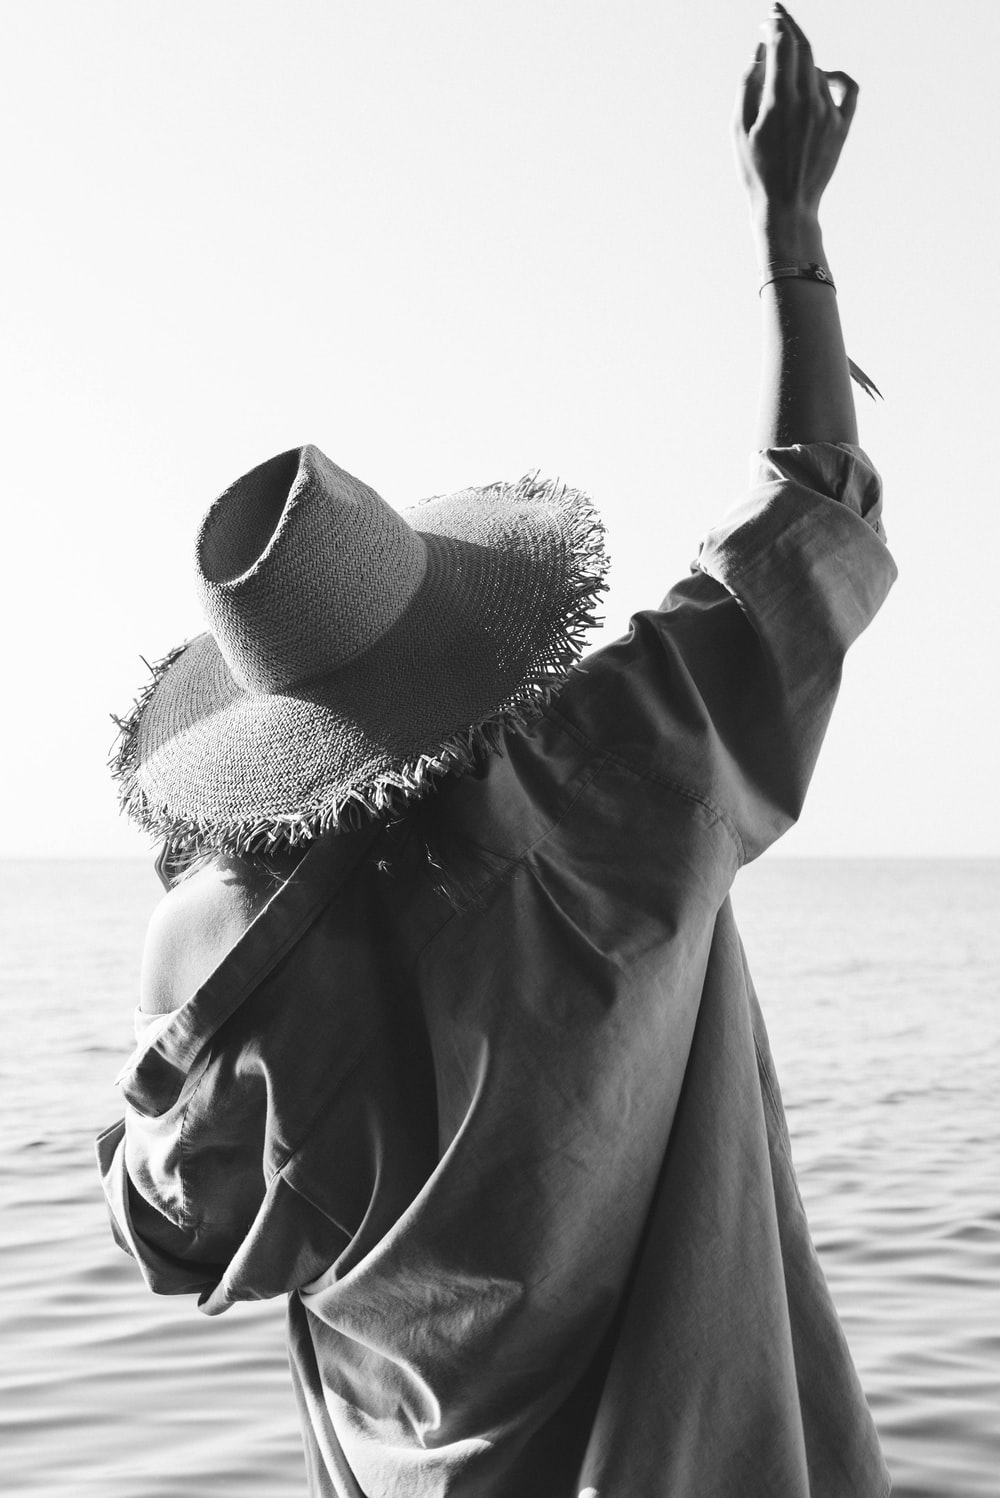 grayscale photo of woman wearing sun hat and sunglasses